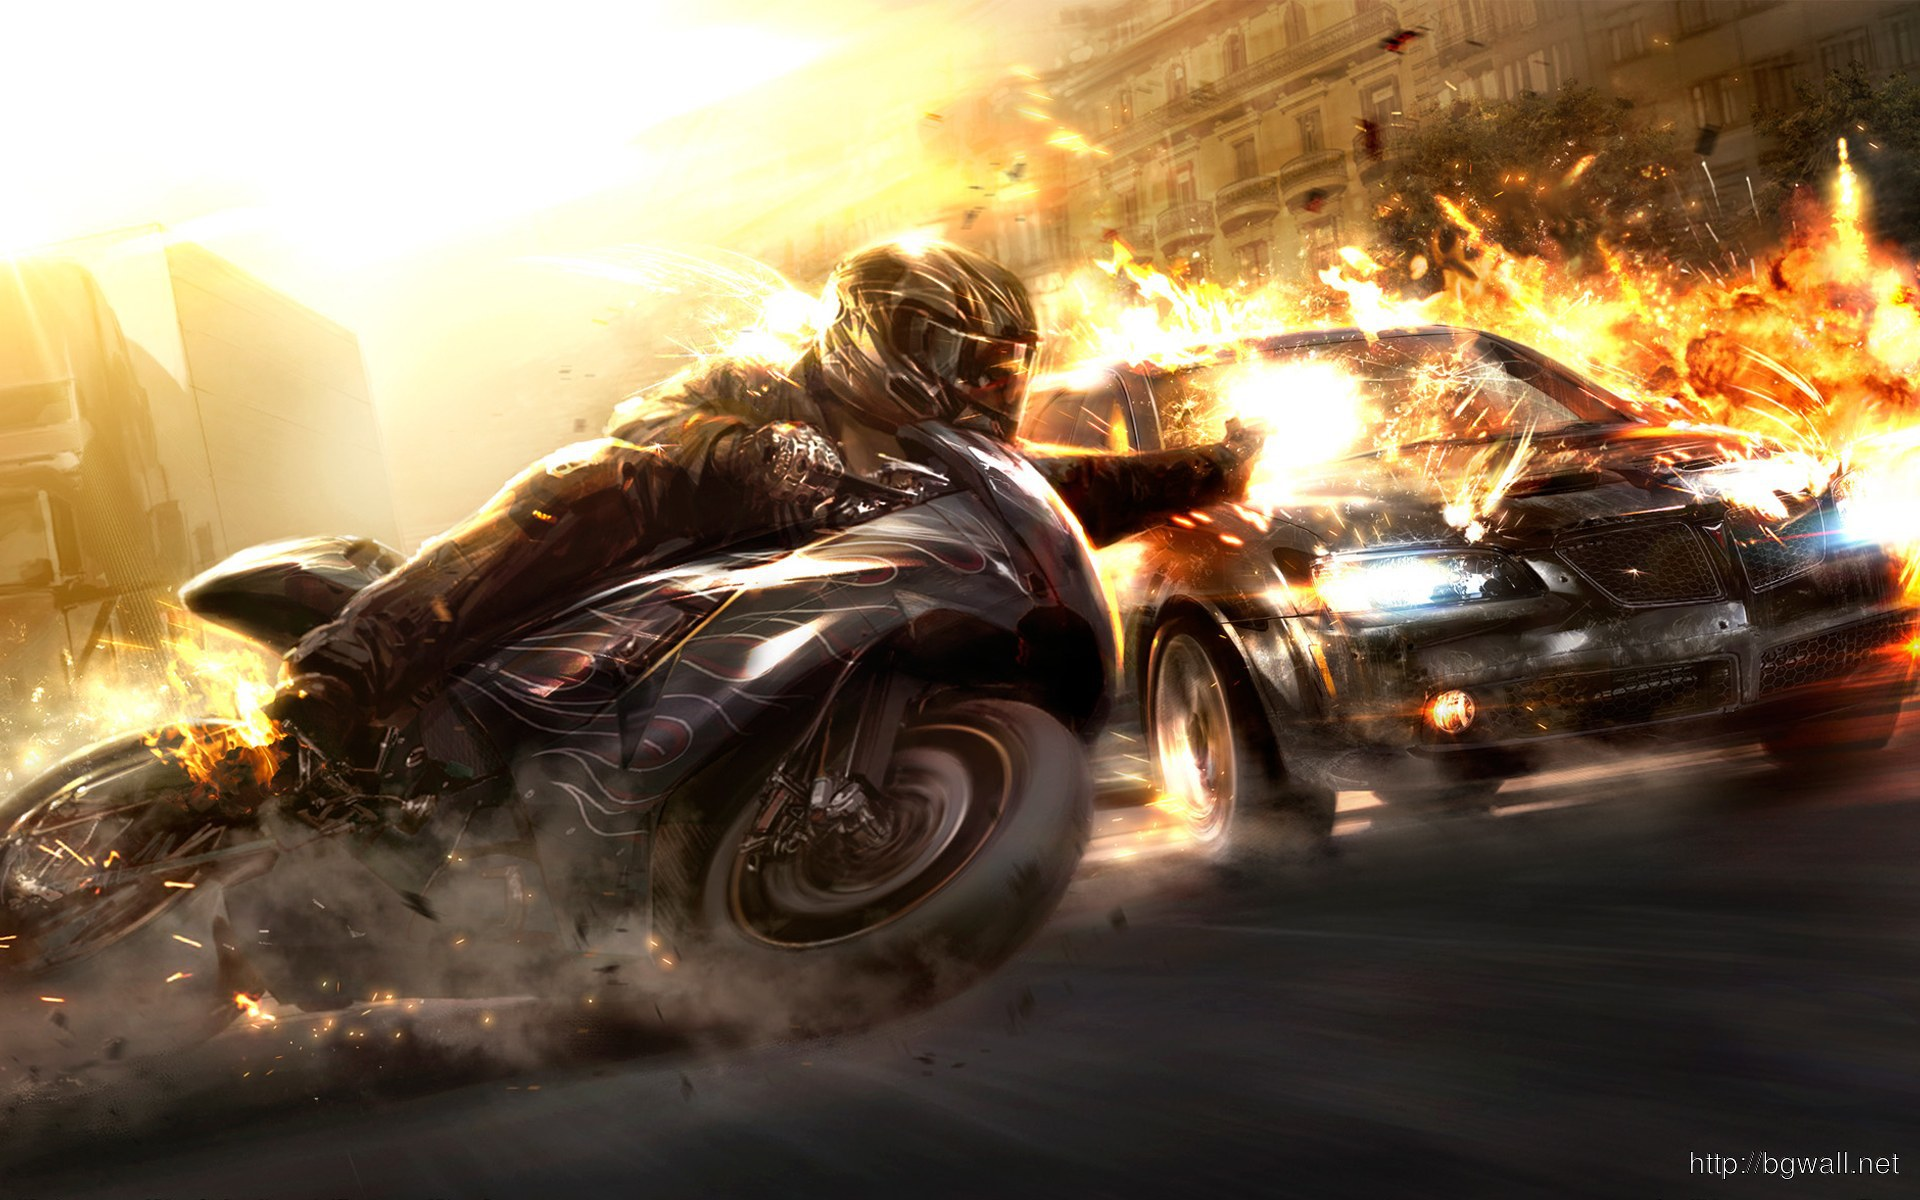 Download Wheelman Wallpapers High Resolution Full Size